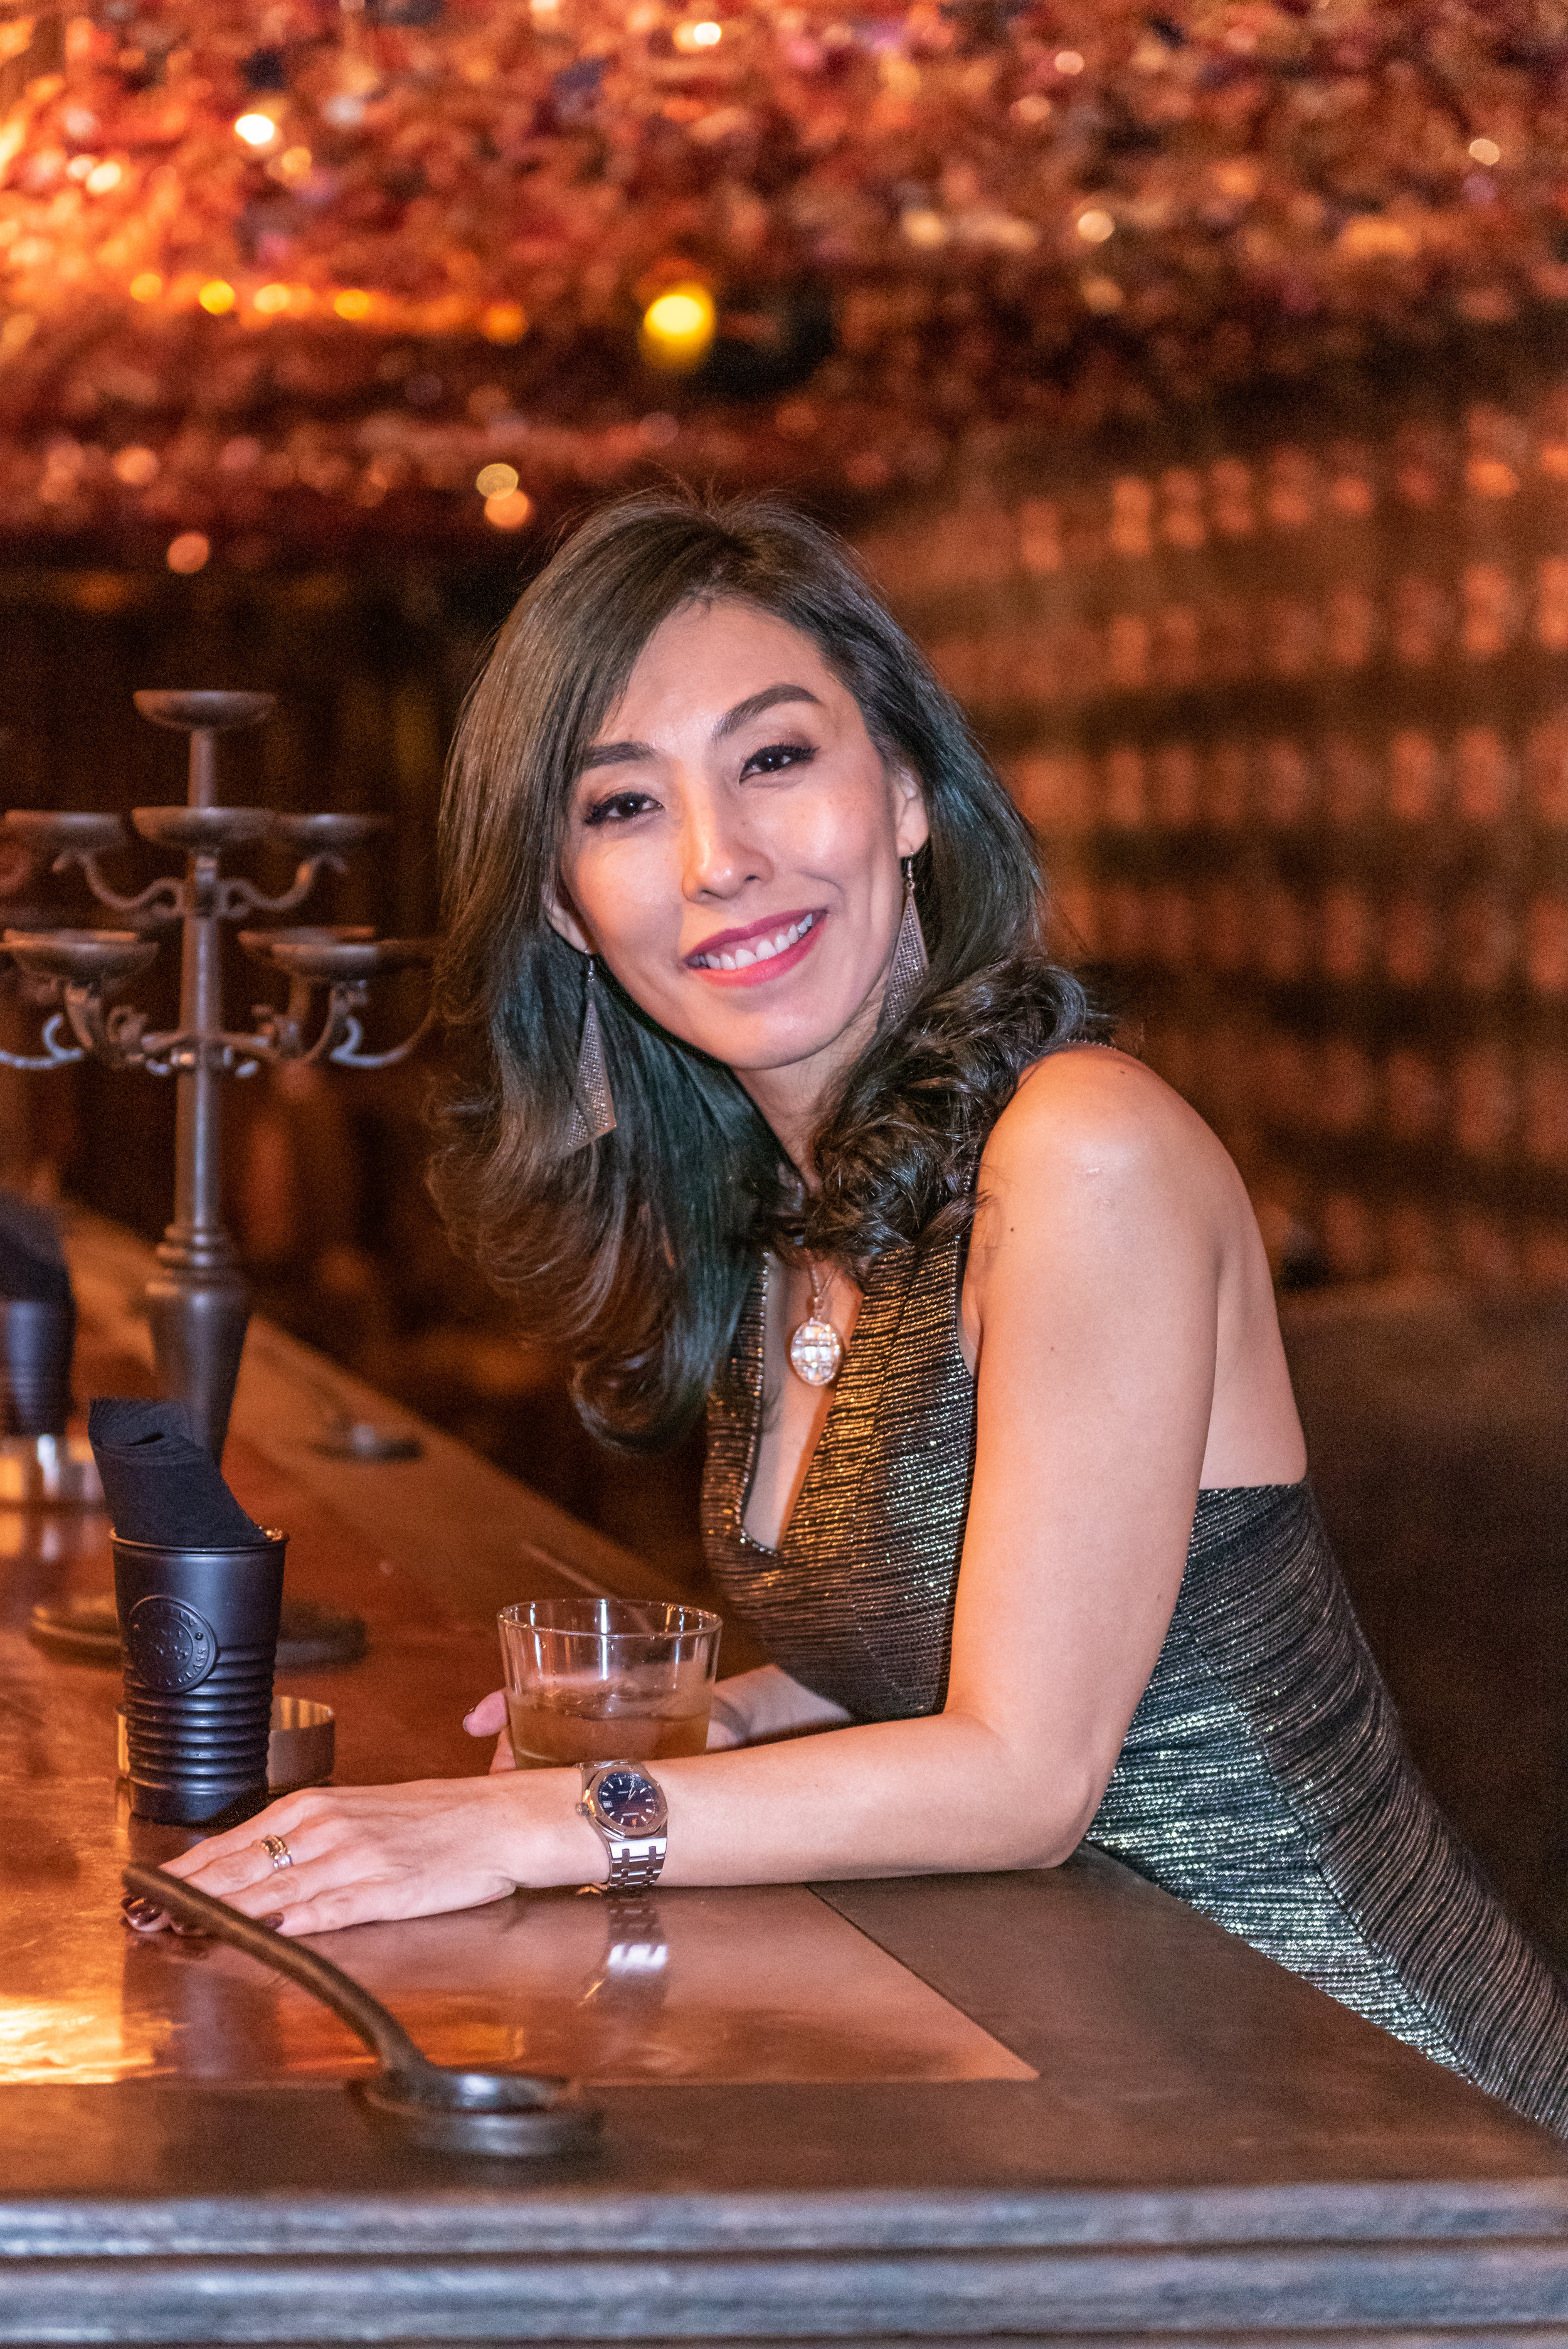 "Jennifer Ong - Founder and CEO, HAPAFounder and Head Trainer, The A.R.T LabChief Nomad, No Address Society25 years ago, Jennifer Ong founded Hospitality Asia - the region's premier hospitality, F&B and travel magazine for the industry. She started the publishing business at the age of 22. Throughout her journey, her devotion and insatiable zest for improvement has successfully steered her company into one of the most established and recognised communication platforms in the industry covering publishing, awards and events management. In recognition of industry distinction, she published The Pinnacle of Hospitality, a timeless collector's edition featuring top 100 industry owners and personalities to honour their outstanding dedication and contribution towards the industry. Being a firm believer of service excellence, she recently introduced a customer service, skills and competency training programme to uplift the service standards in hospitality.Jennifer is the mastermind behind the much sought-after and widely acknowledged HAPA Awards, an industry benchmark awards programme which recognises and rewards outstanding establishments and passionate individuals who have shown commitment, drive and passion for excellence in the hospitality and culinary industries throughout Asia. Her own unwavering dedication was rewarded when she was nominated for the Malaysian Prime Minister's Award for ""Women Entrepreneur of the Year 2011"" and ""EY Entrepreneur of the Year 2014 Malaysia"" by Ernst & Young.As a certified NLP Practitioner and a HRDF certified professional trainer, Jennifer conducts training together with industry experts. Jennifer's introduction of Mindset Training into her repertoire came to fruition after she identified her niche – pinpointing the root cause of each and every communication breakdown. Her passion for bridging the gap between people and shifting mindsets resets personal and working relationships. Jennifer intends on moving forward by becoming a speaker who addresses issues of mindsets across all platforms in life."